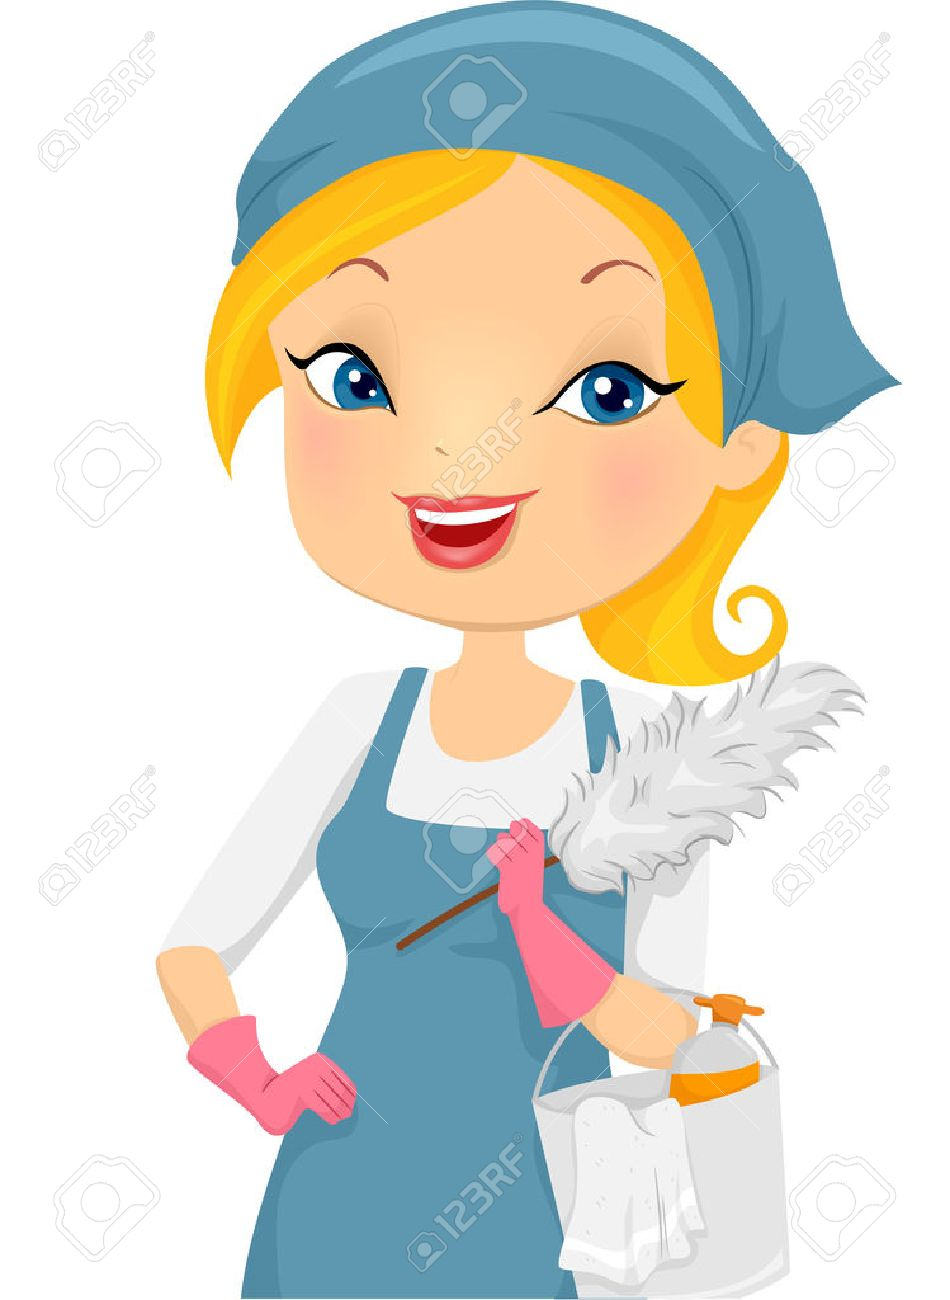 950x1300 Illustration Of A Girl Providing Housecleaning Service Royalty